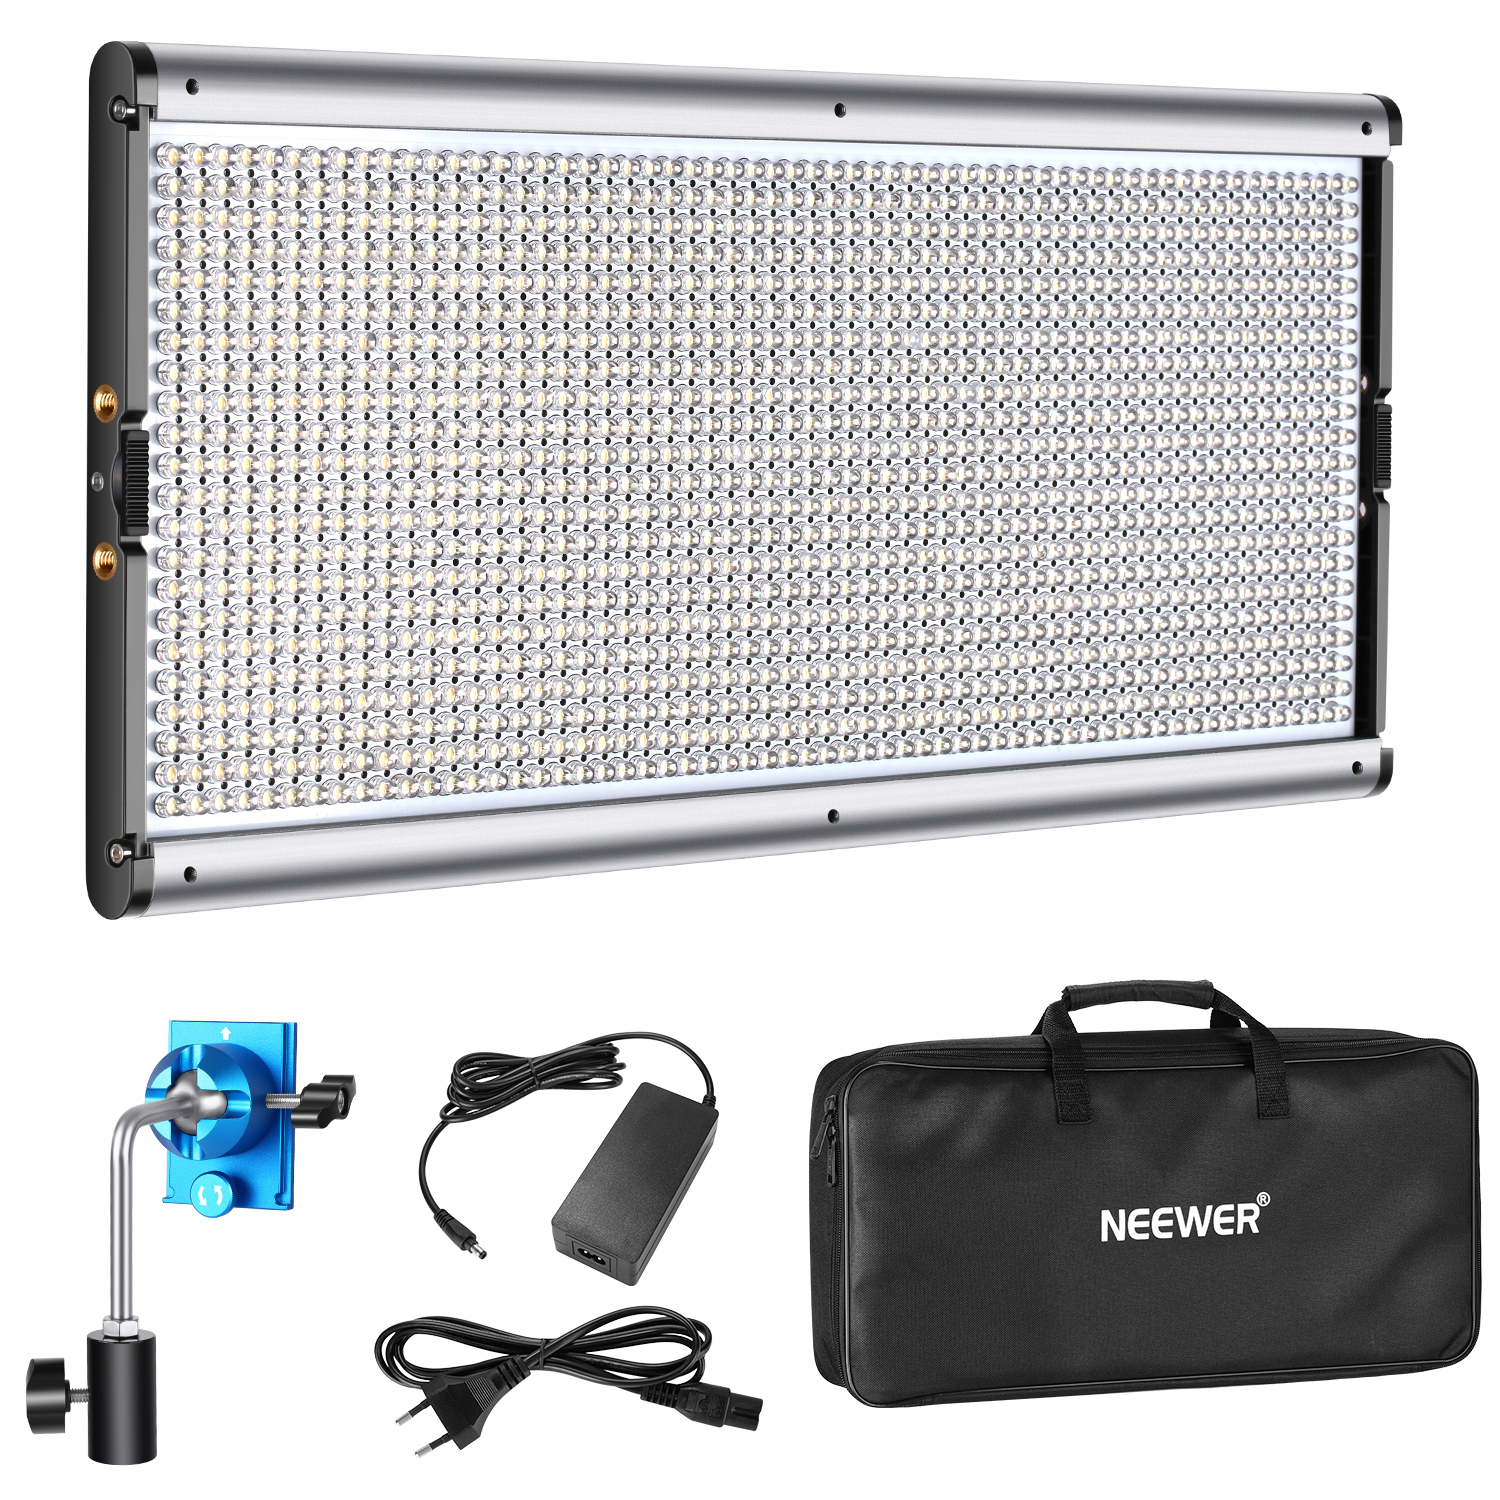 Neewer Dimmable LED Video Light Photography LED Lighting with Metal Frame 1320 LED Beads <font><b>3200</b></font>-5600K, DC Adapter/<font><b>Battery</b></font> Power image